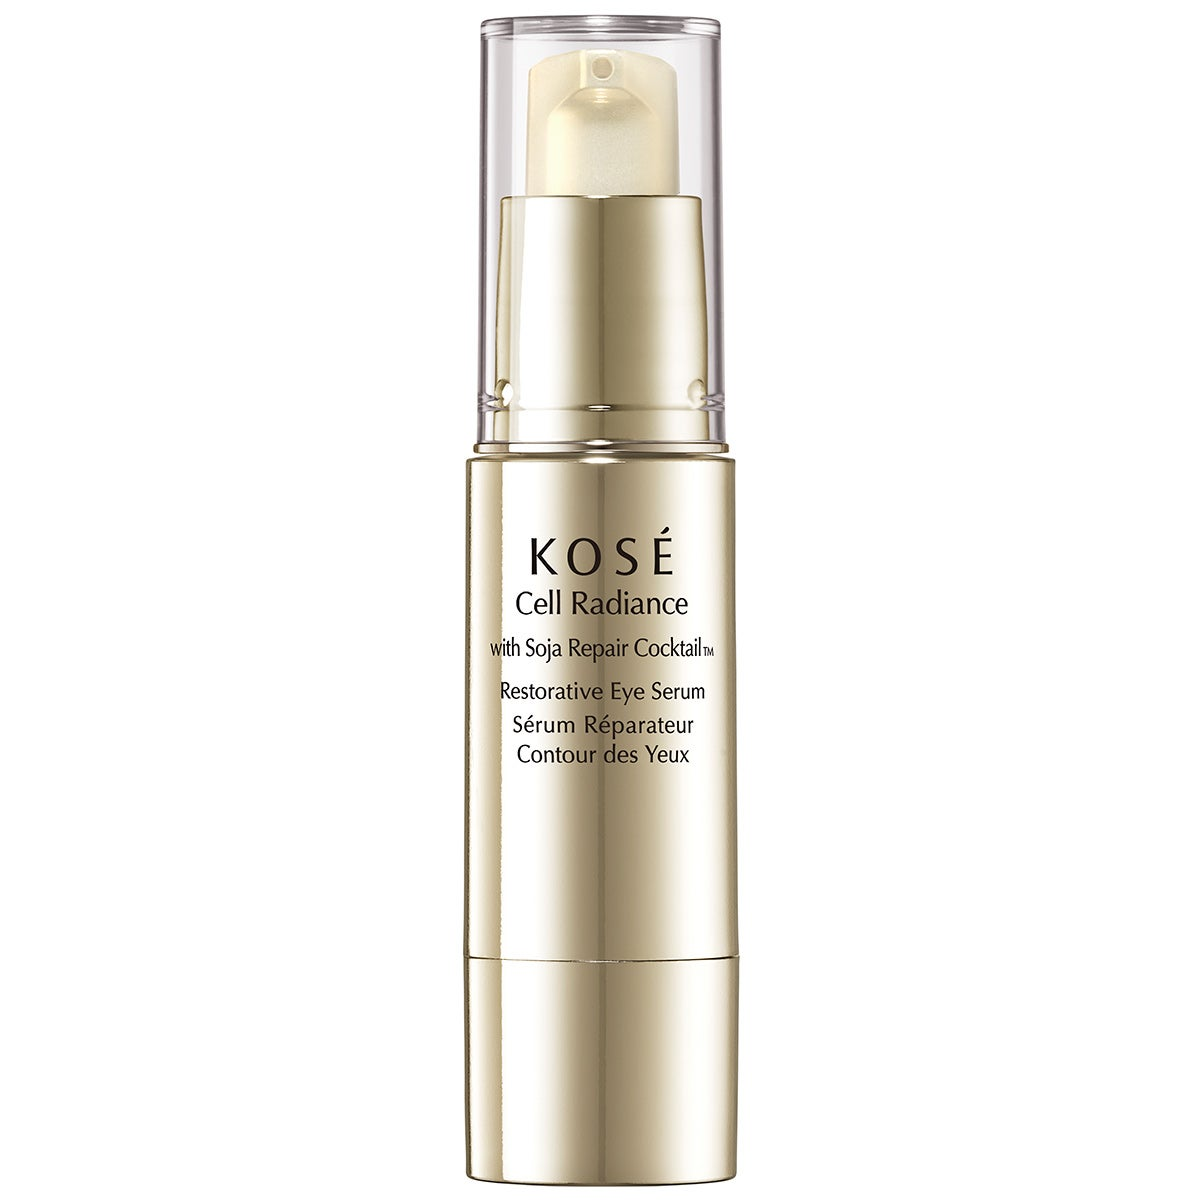 KOSÉ Cell Radiance Restorative Eye Serum